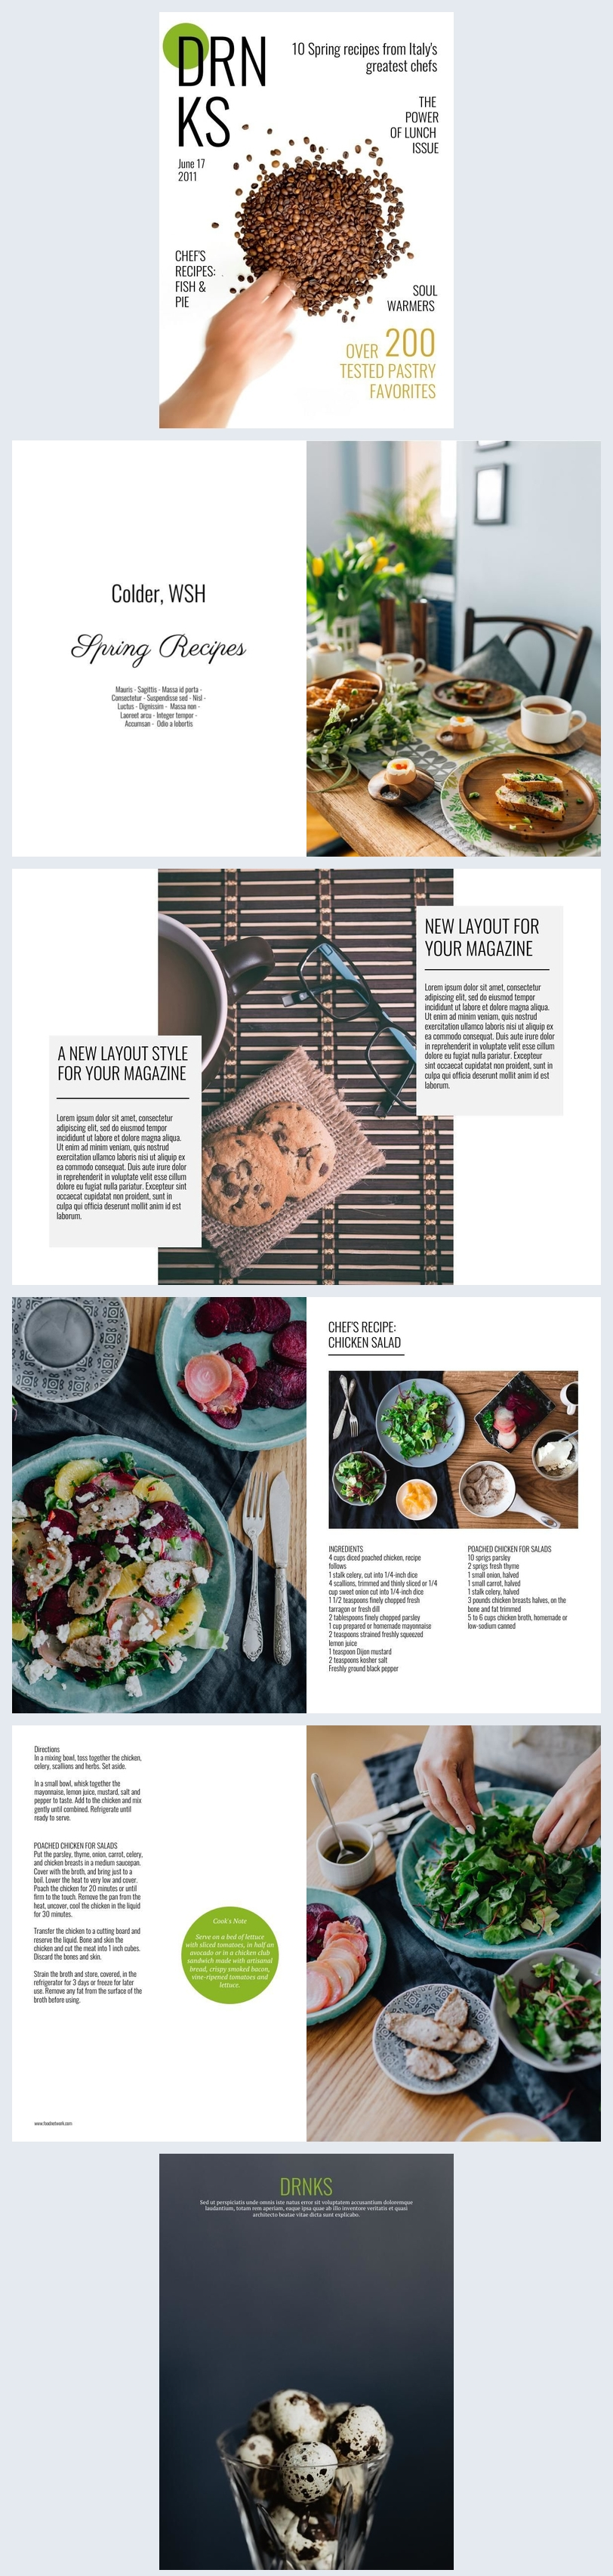 Food Magazine Templates Designs Flipsnack